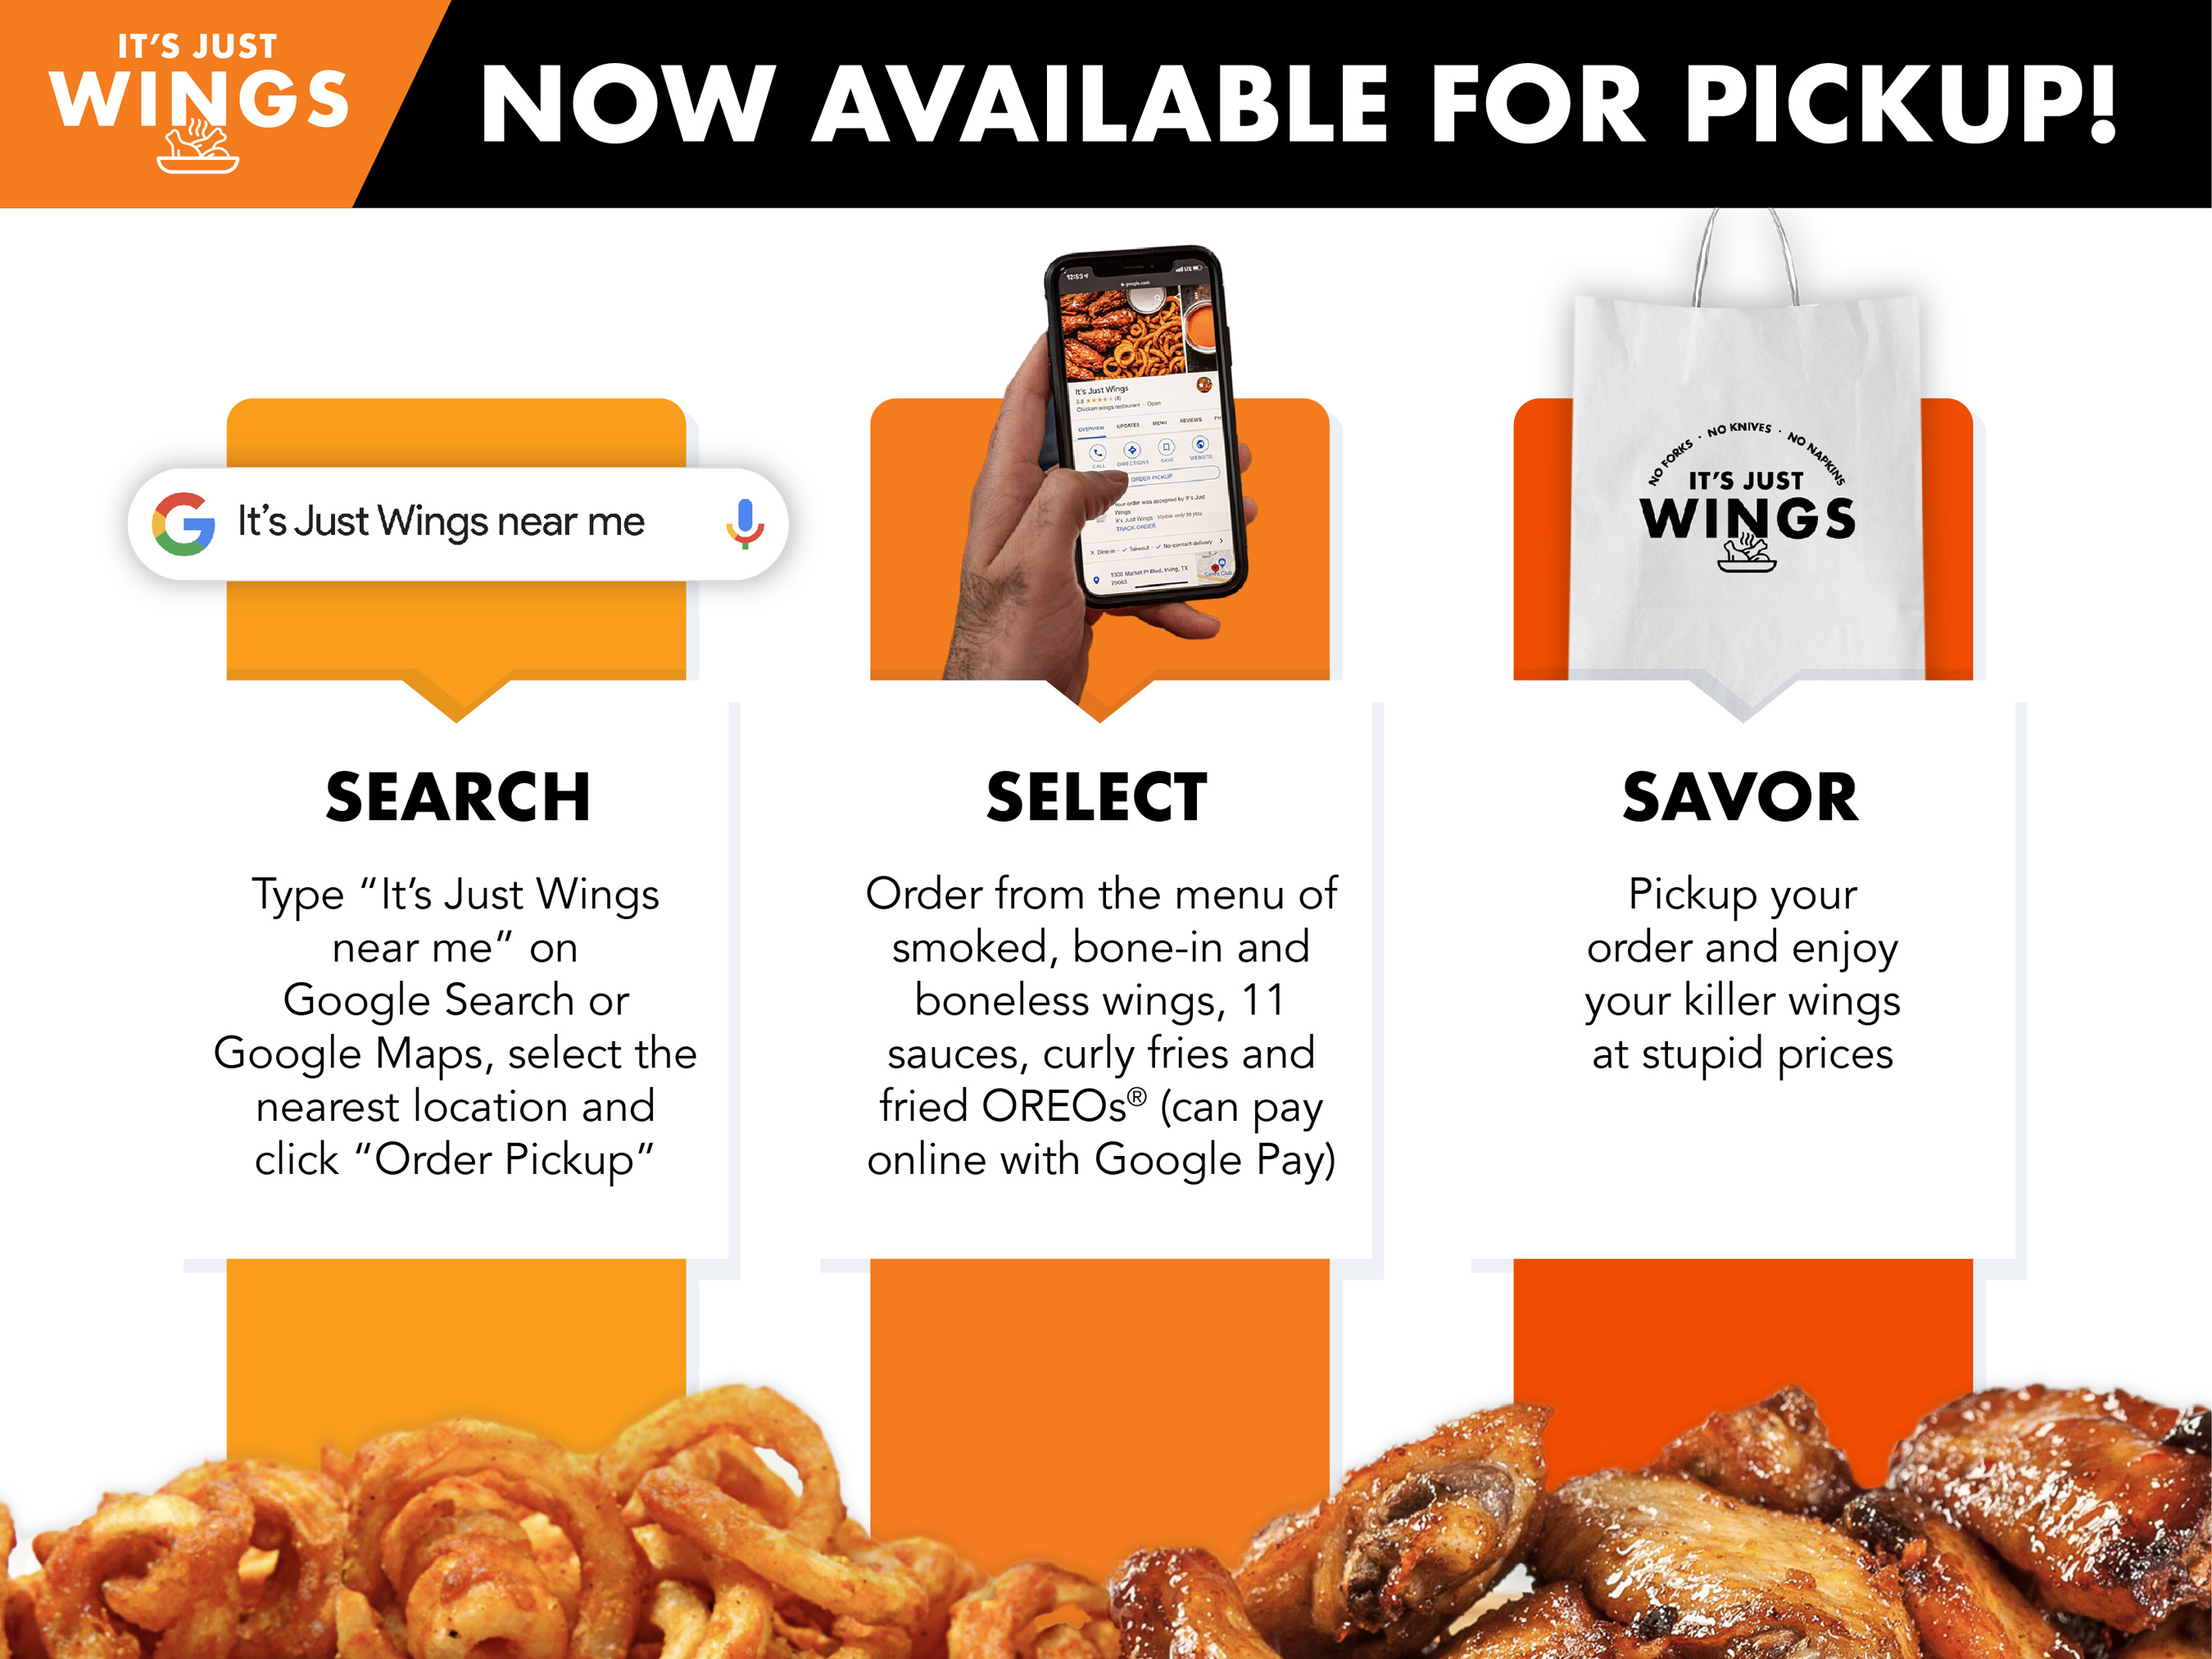 Search, select and savor – it's that easy!